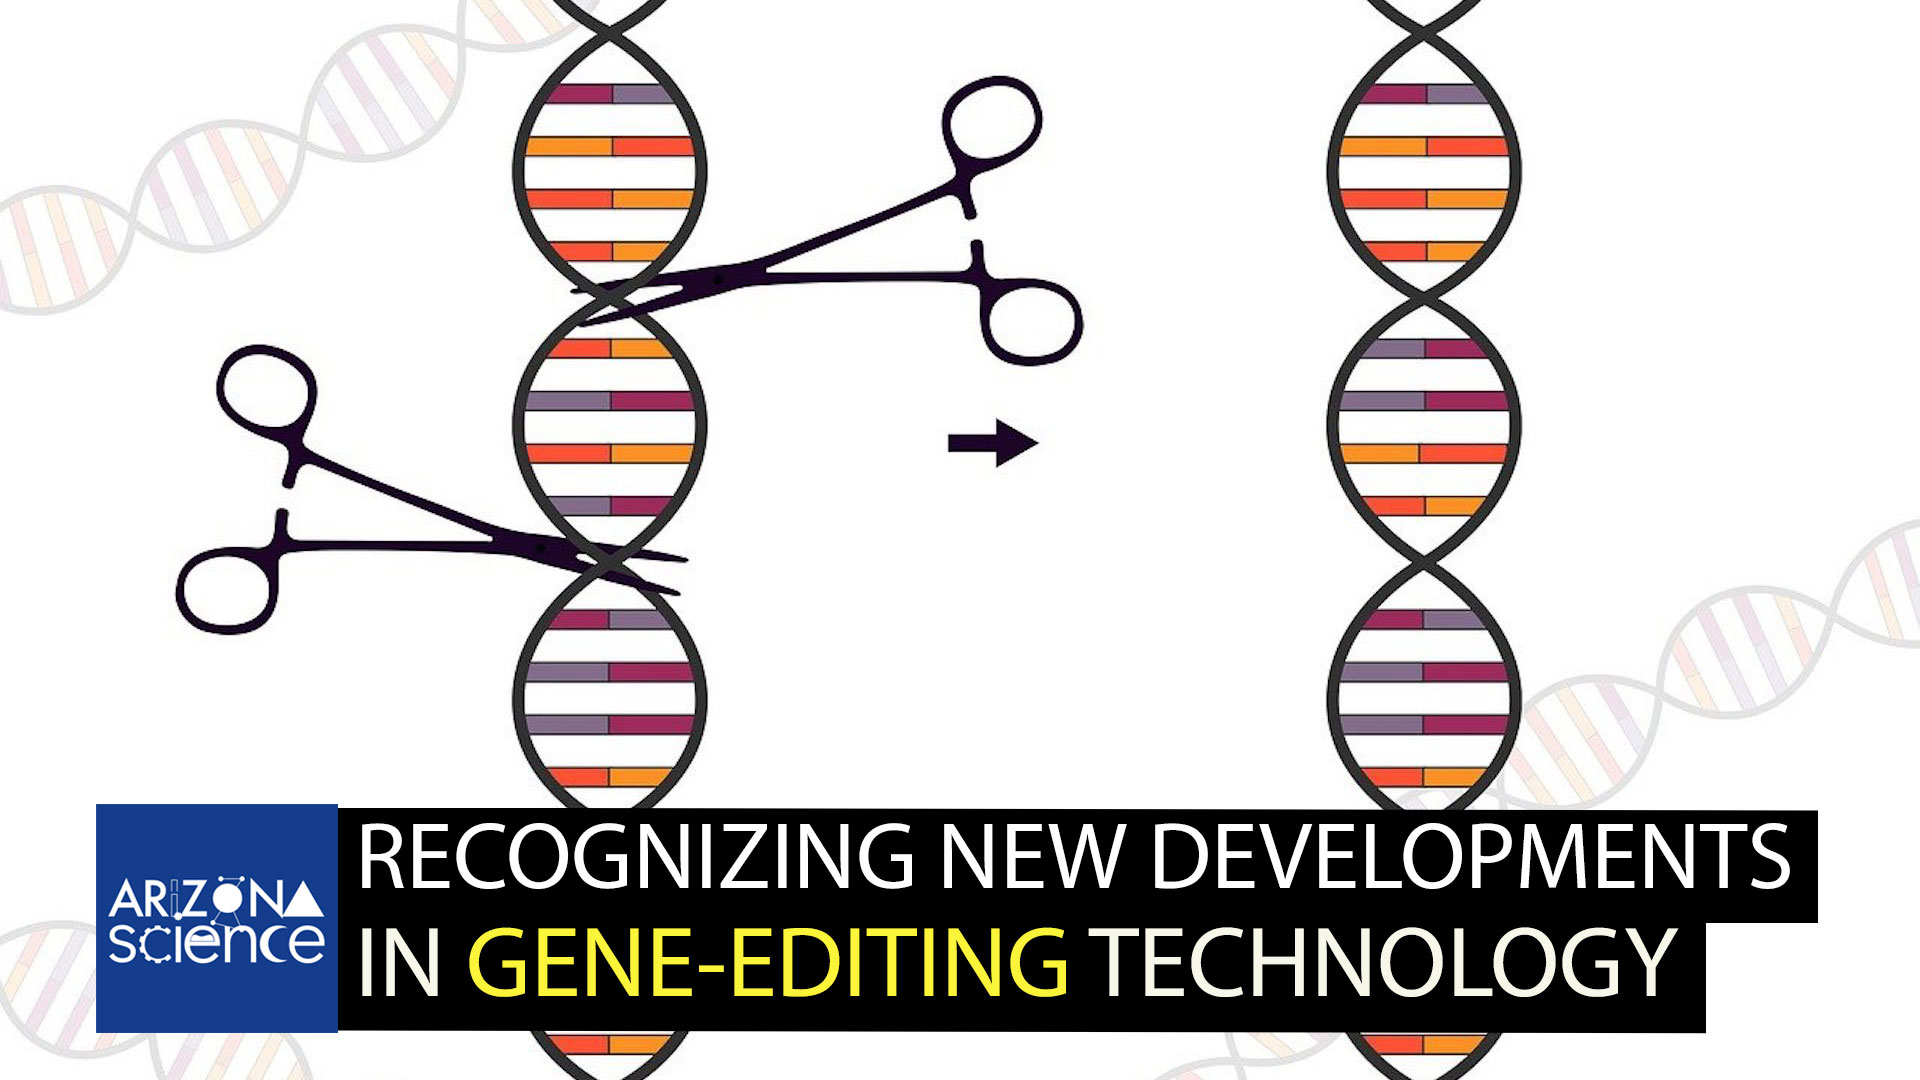 Scientists compare gene editing to cutting and splicing DNA.